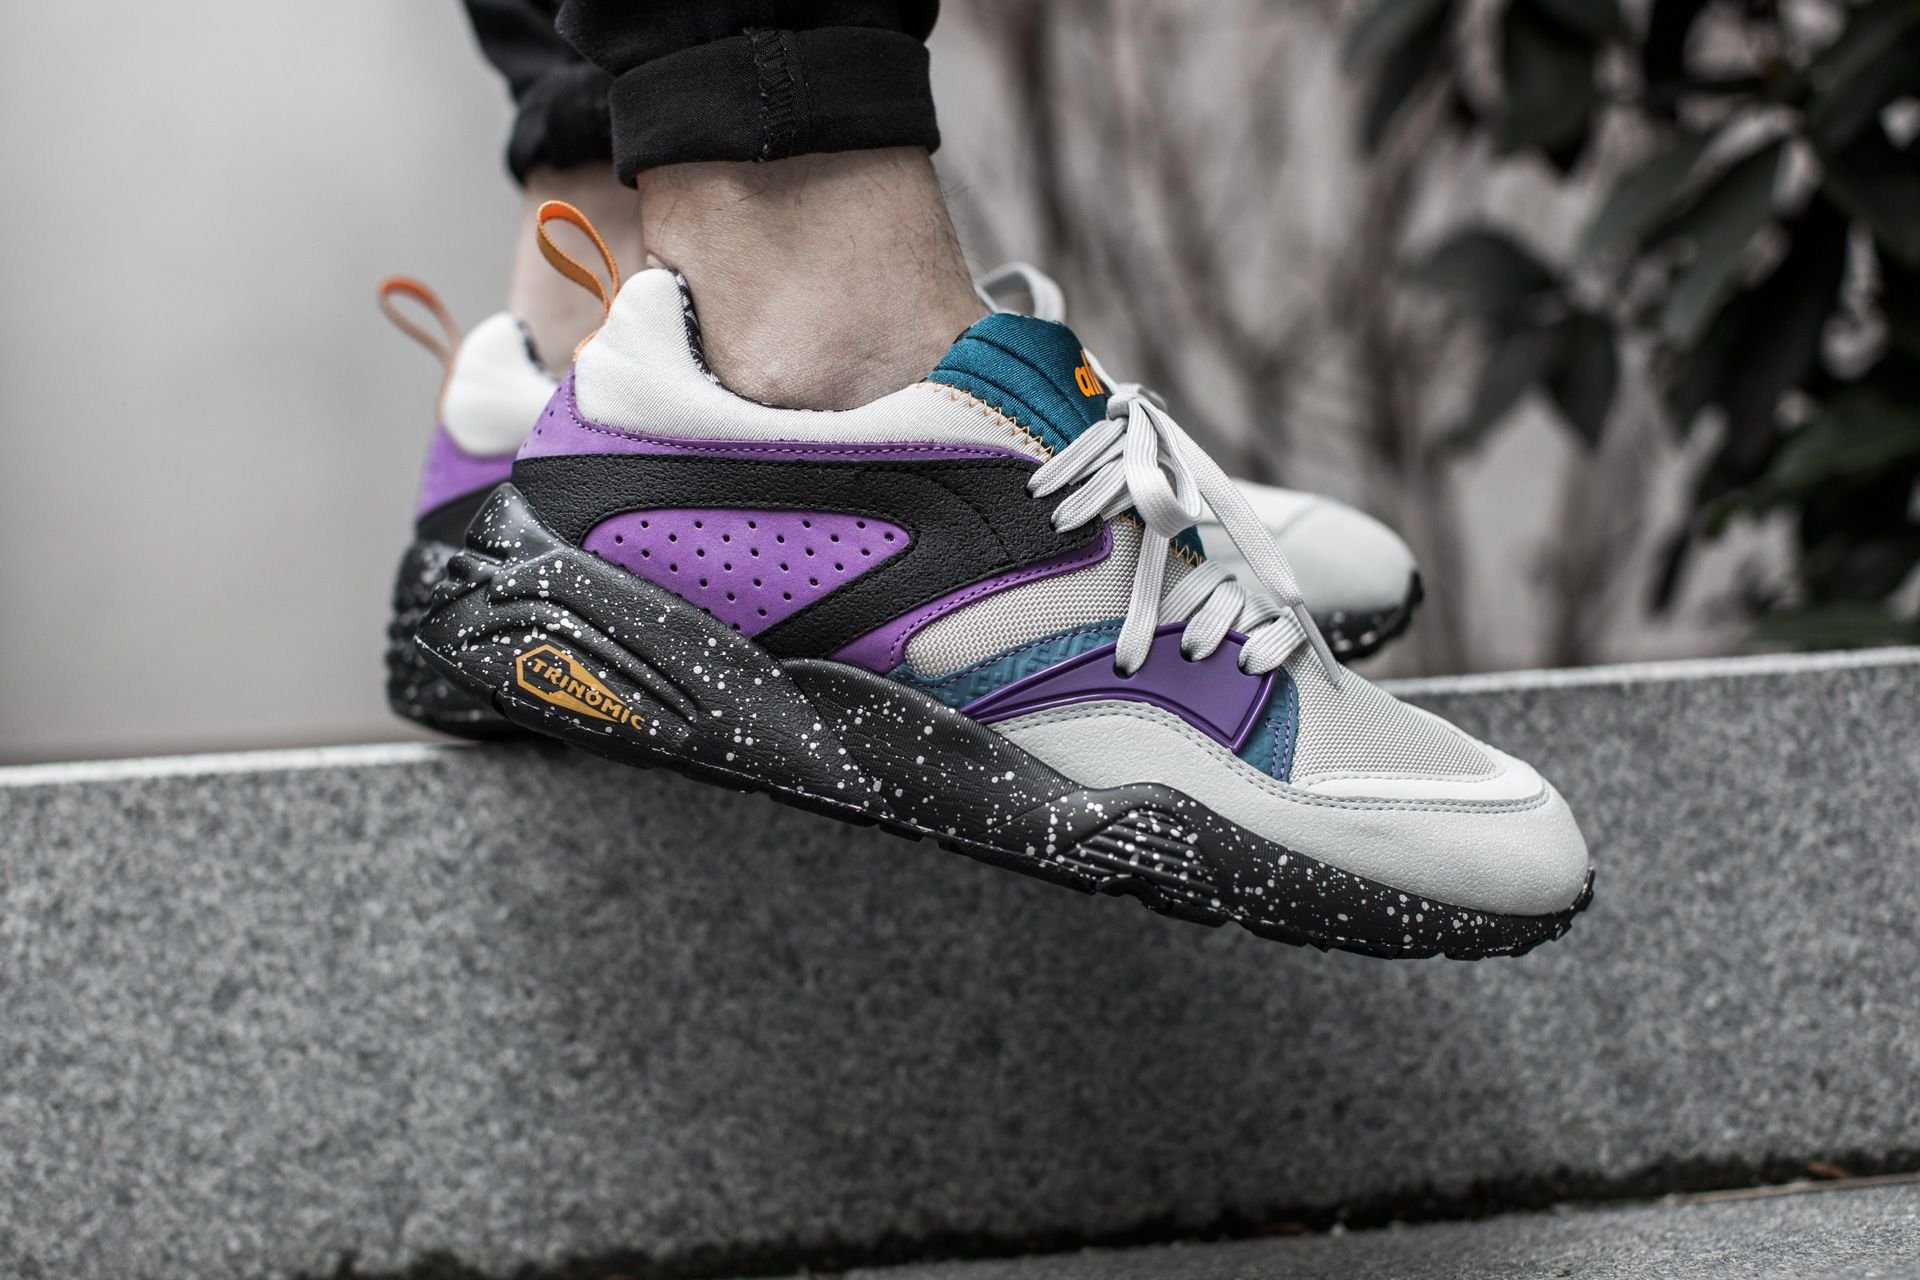 PUMA BLAZE OF GLORY X ALIFE shop online here: www.tint-footwear.